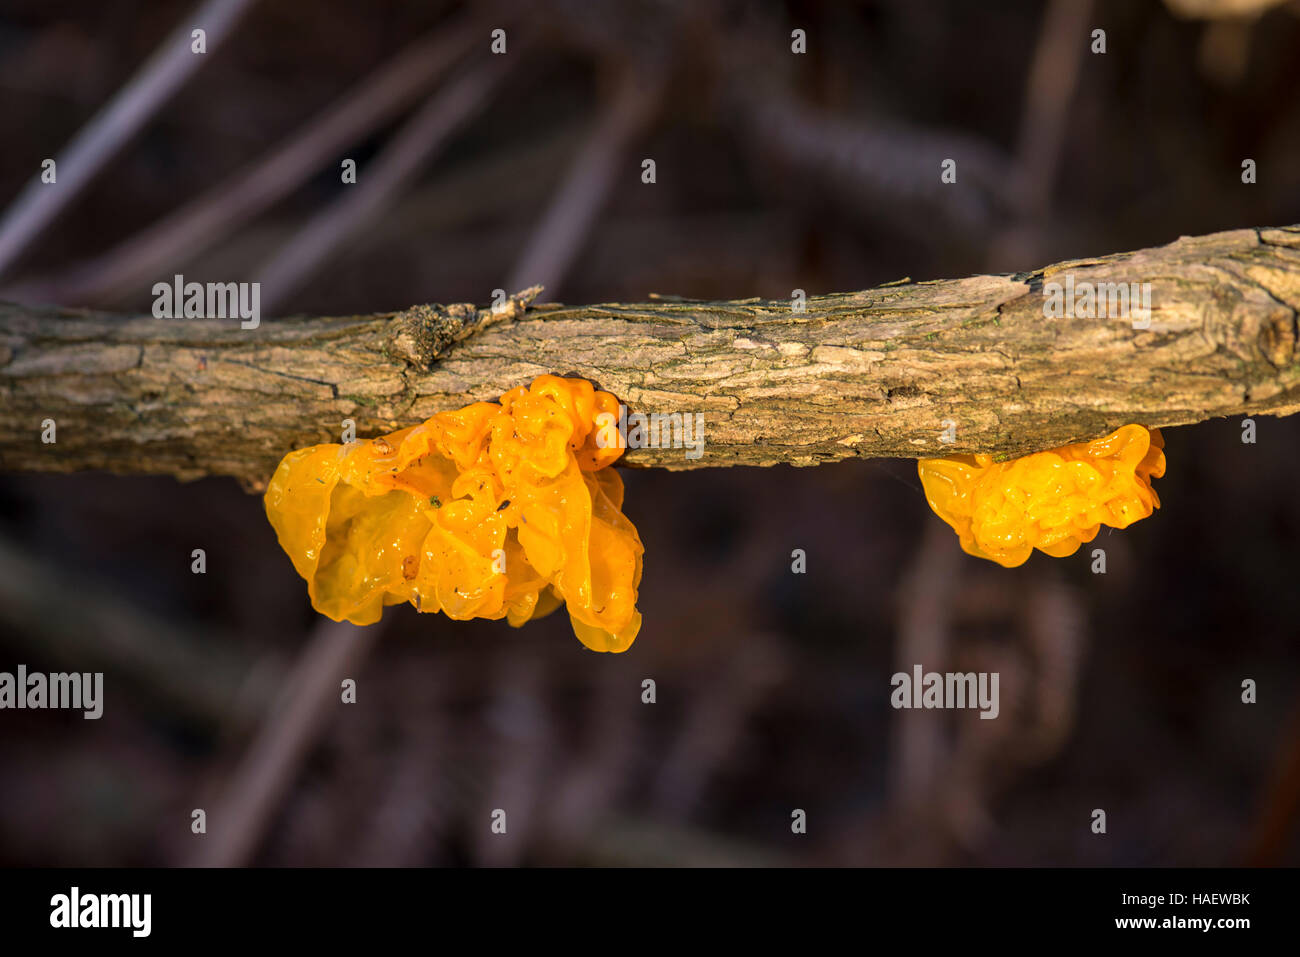 The fungus Tremella mesenterica has several common names including yellow brain fungus, jelly brain fungus and witches' - Stock Image